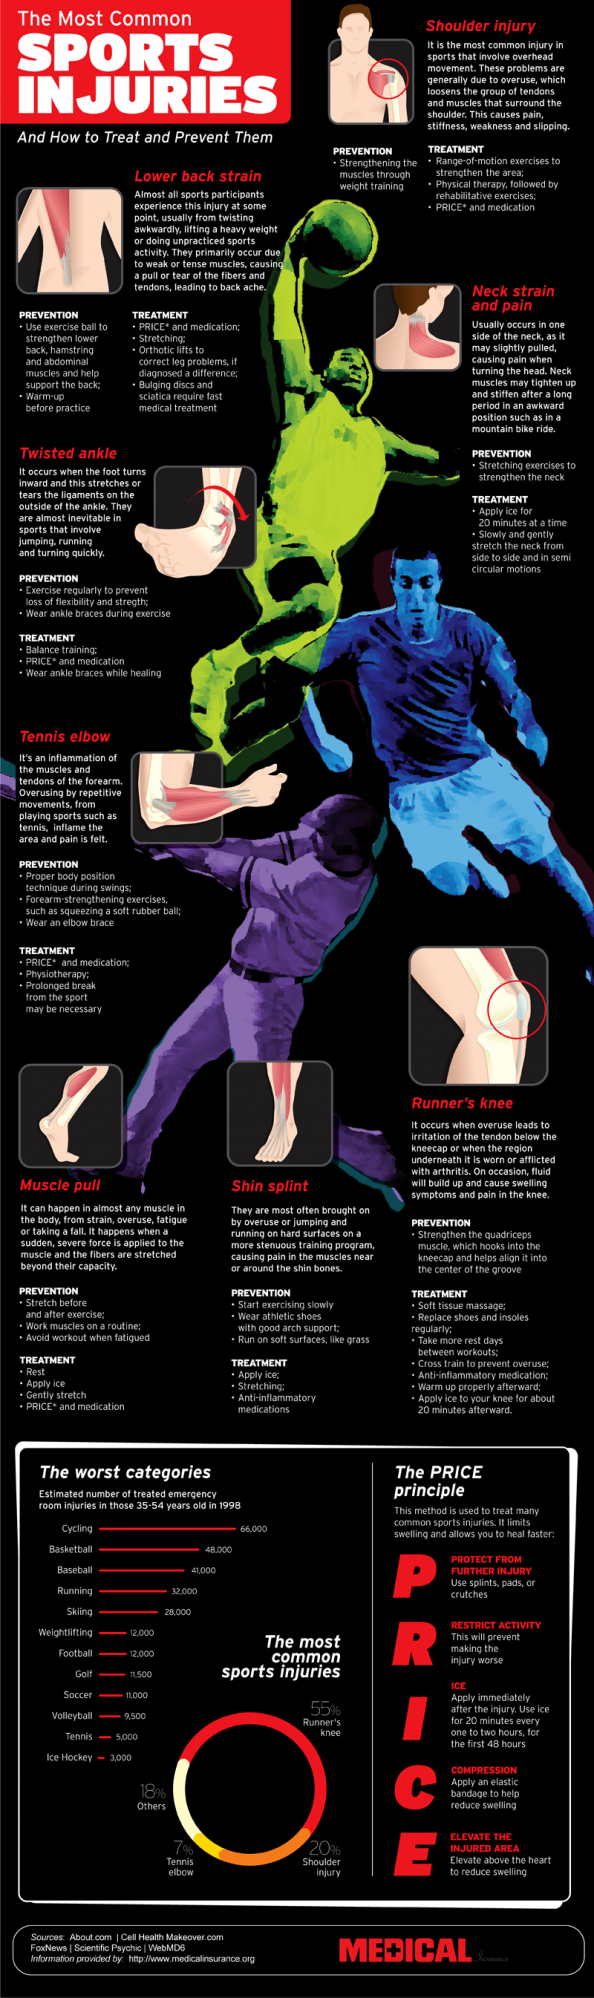 The Most Common Sports Injuries Infographic